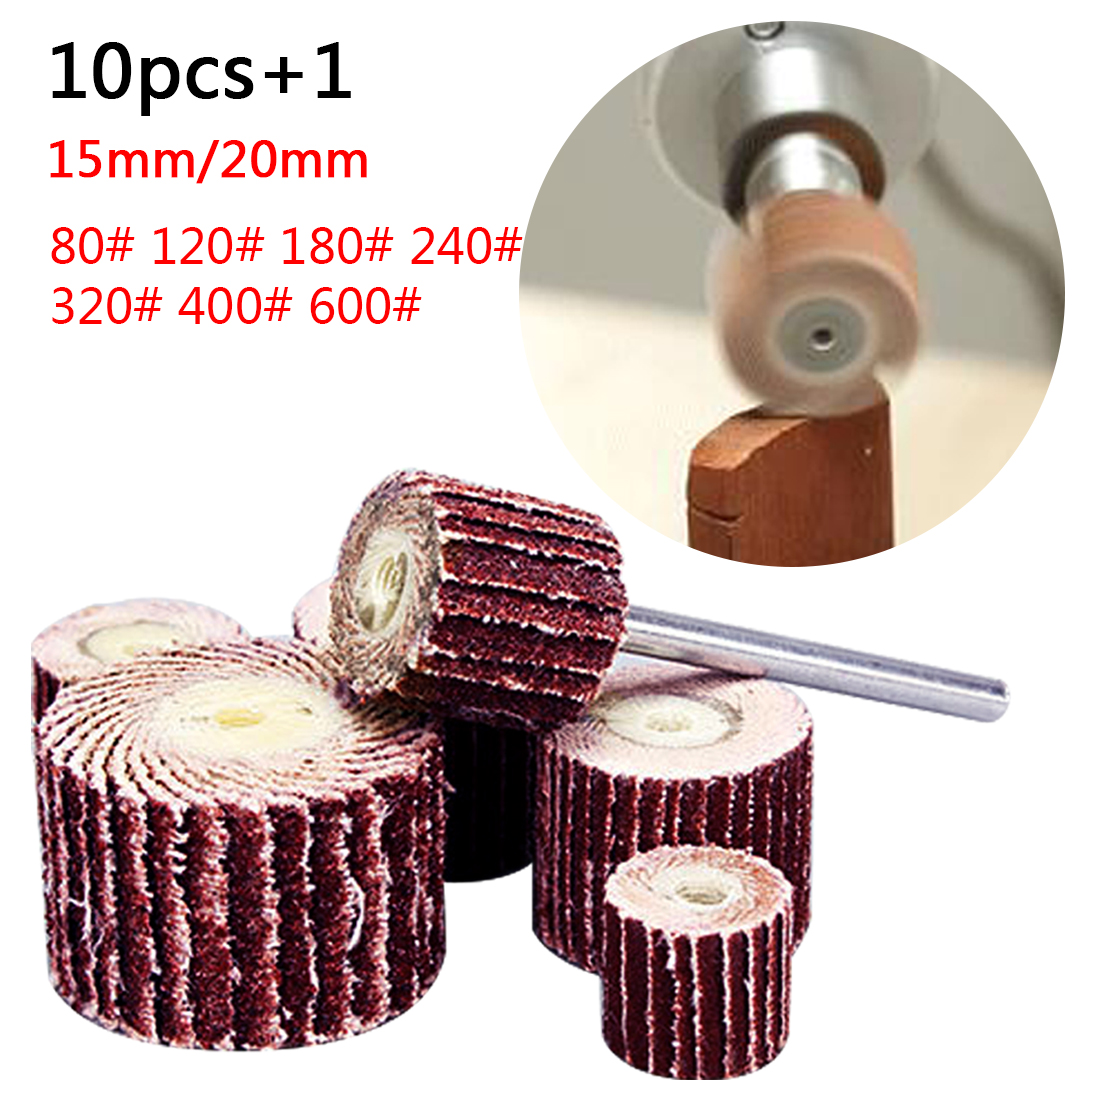 80 120 180 240 320 400 600 Grit Flap Wheel Sander Sanding Disc Replacement Abrasive Grinder Rotary Tool Dremel Mini Drill Tools